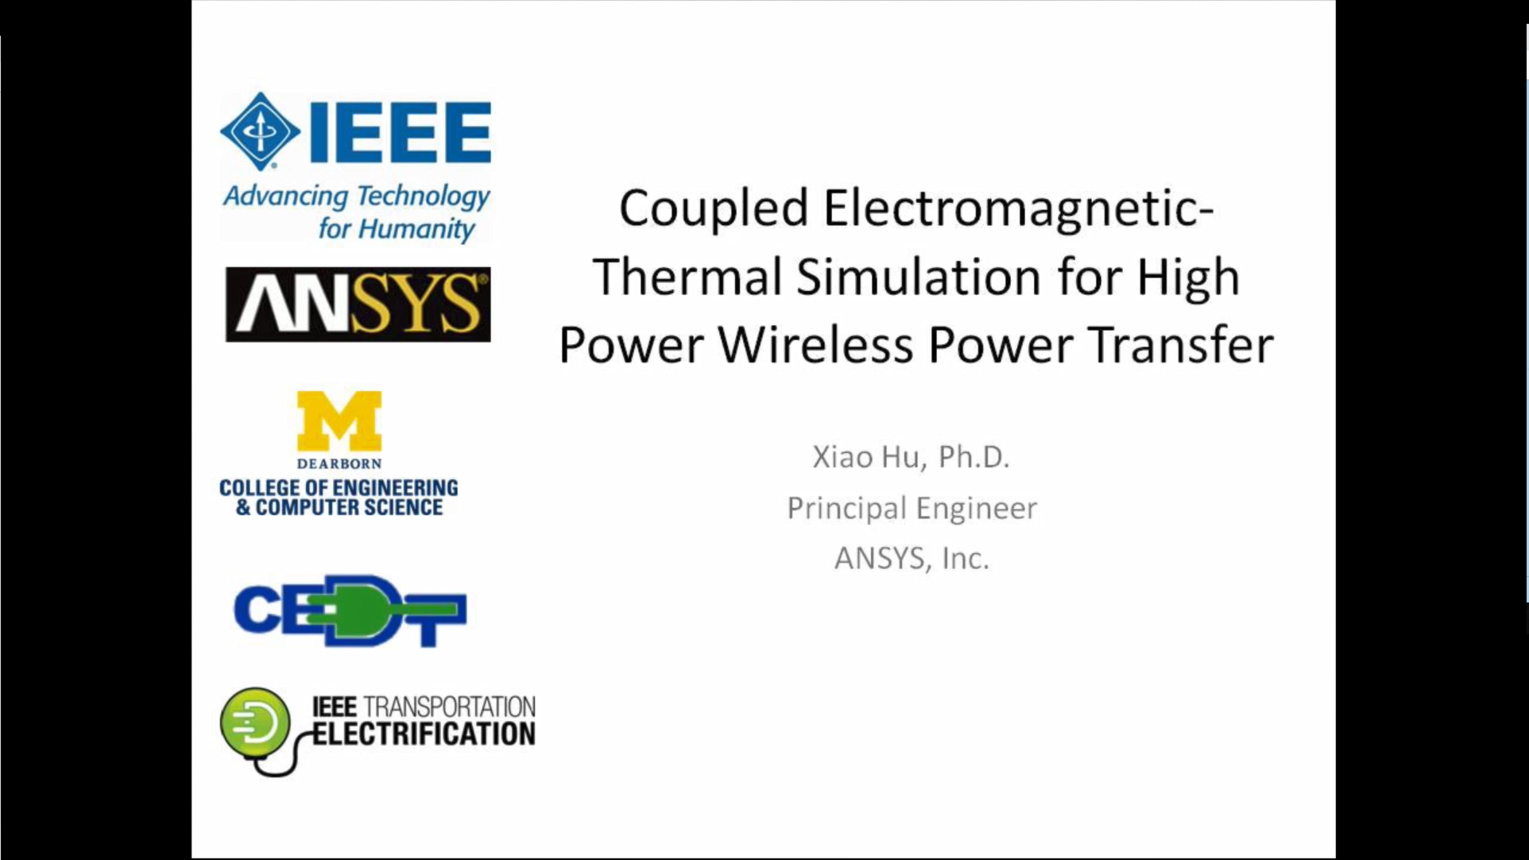 Coupled Electromagnetic-Thermal Simulation for High Power Wireless Power Transfer